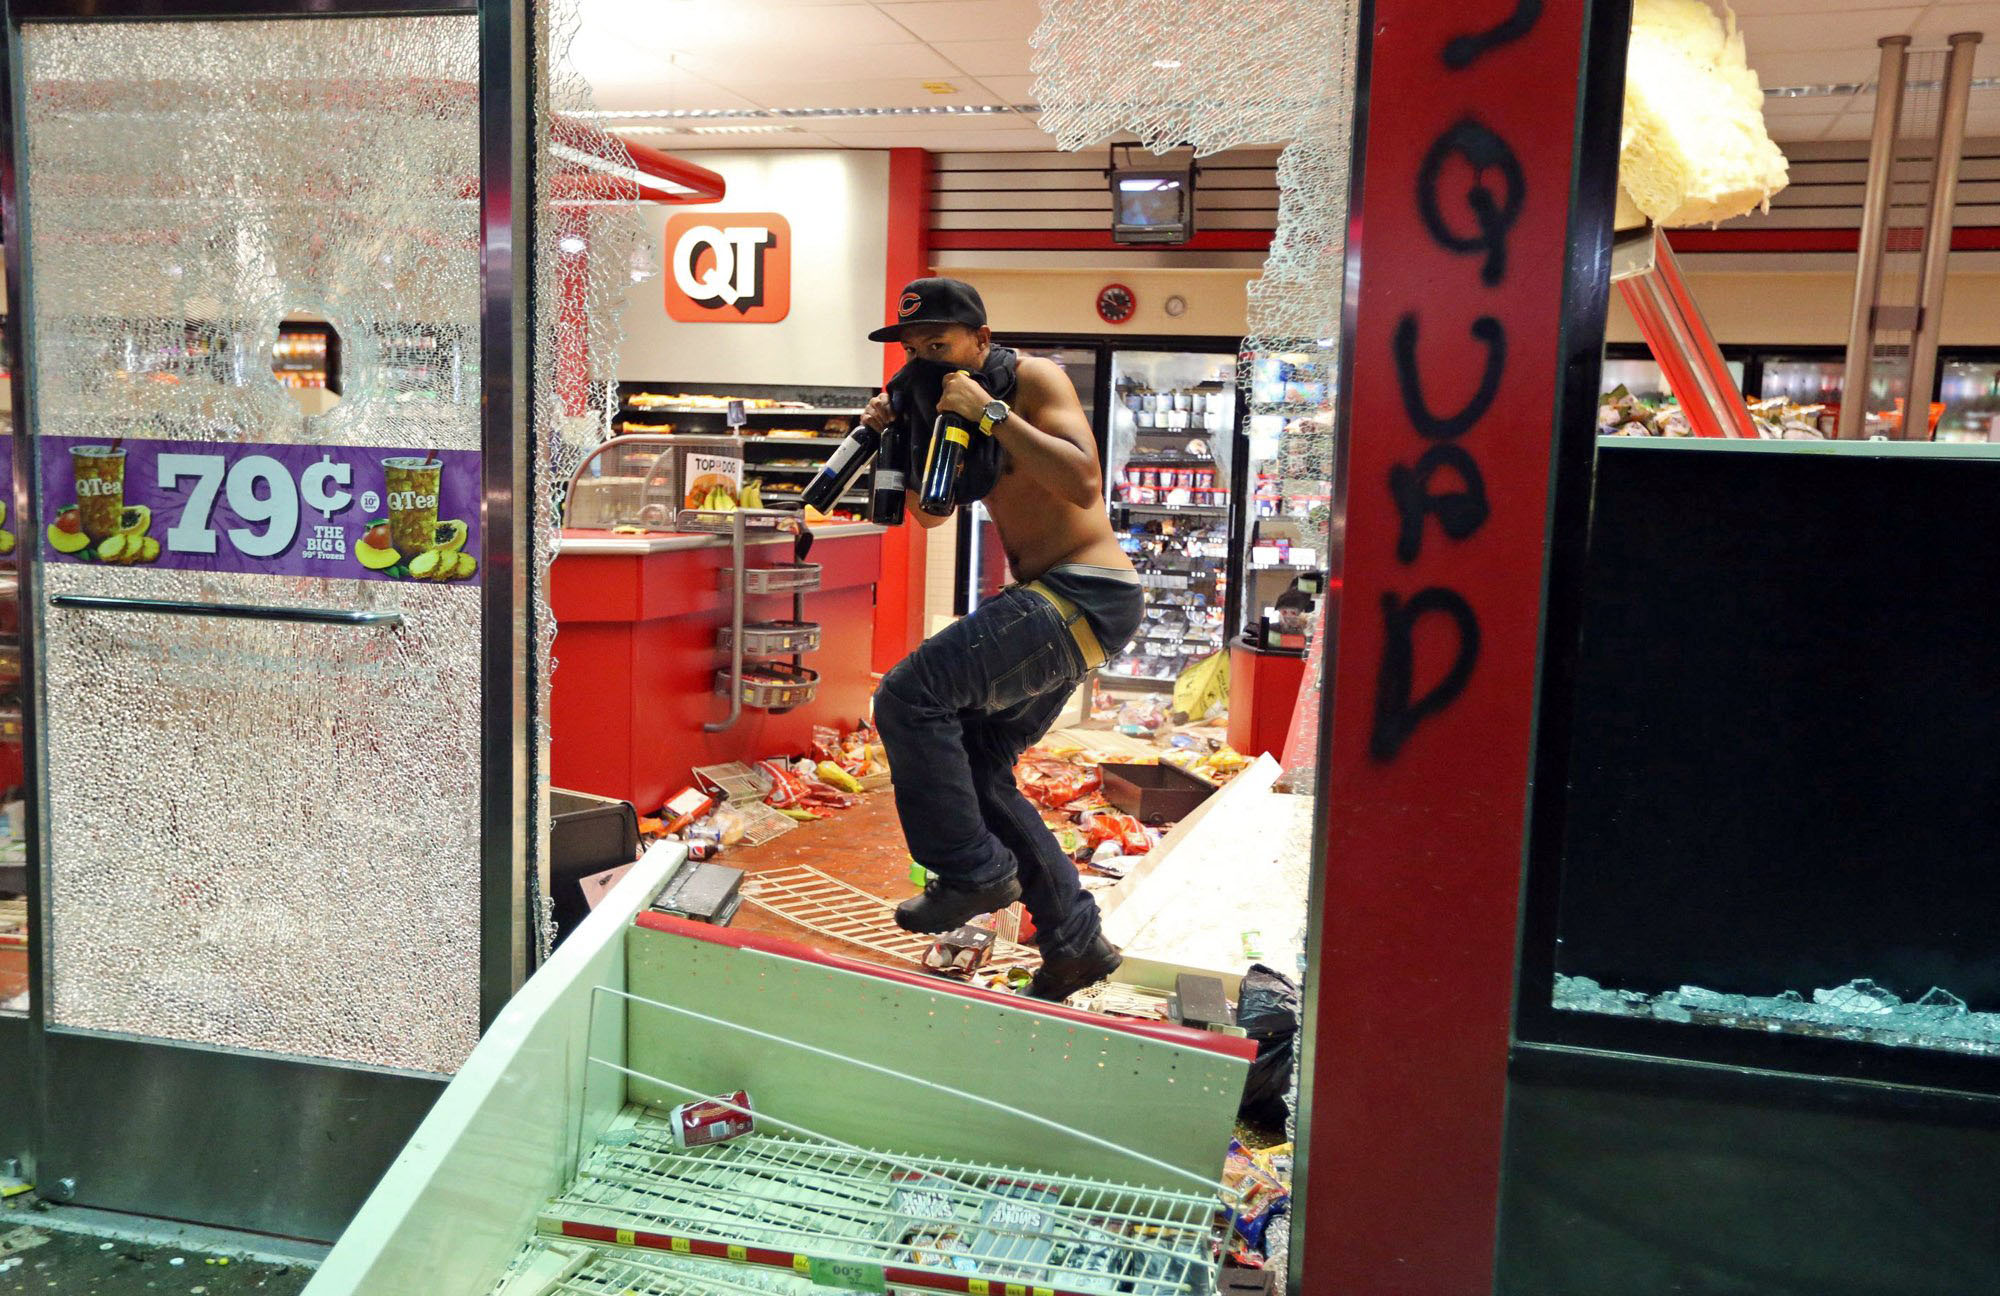 A man leaves a store after looting in Ferguson, Mo. on Aug. 10, 2014.